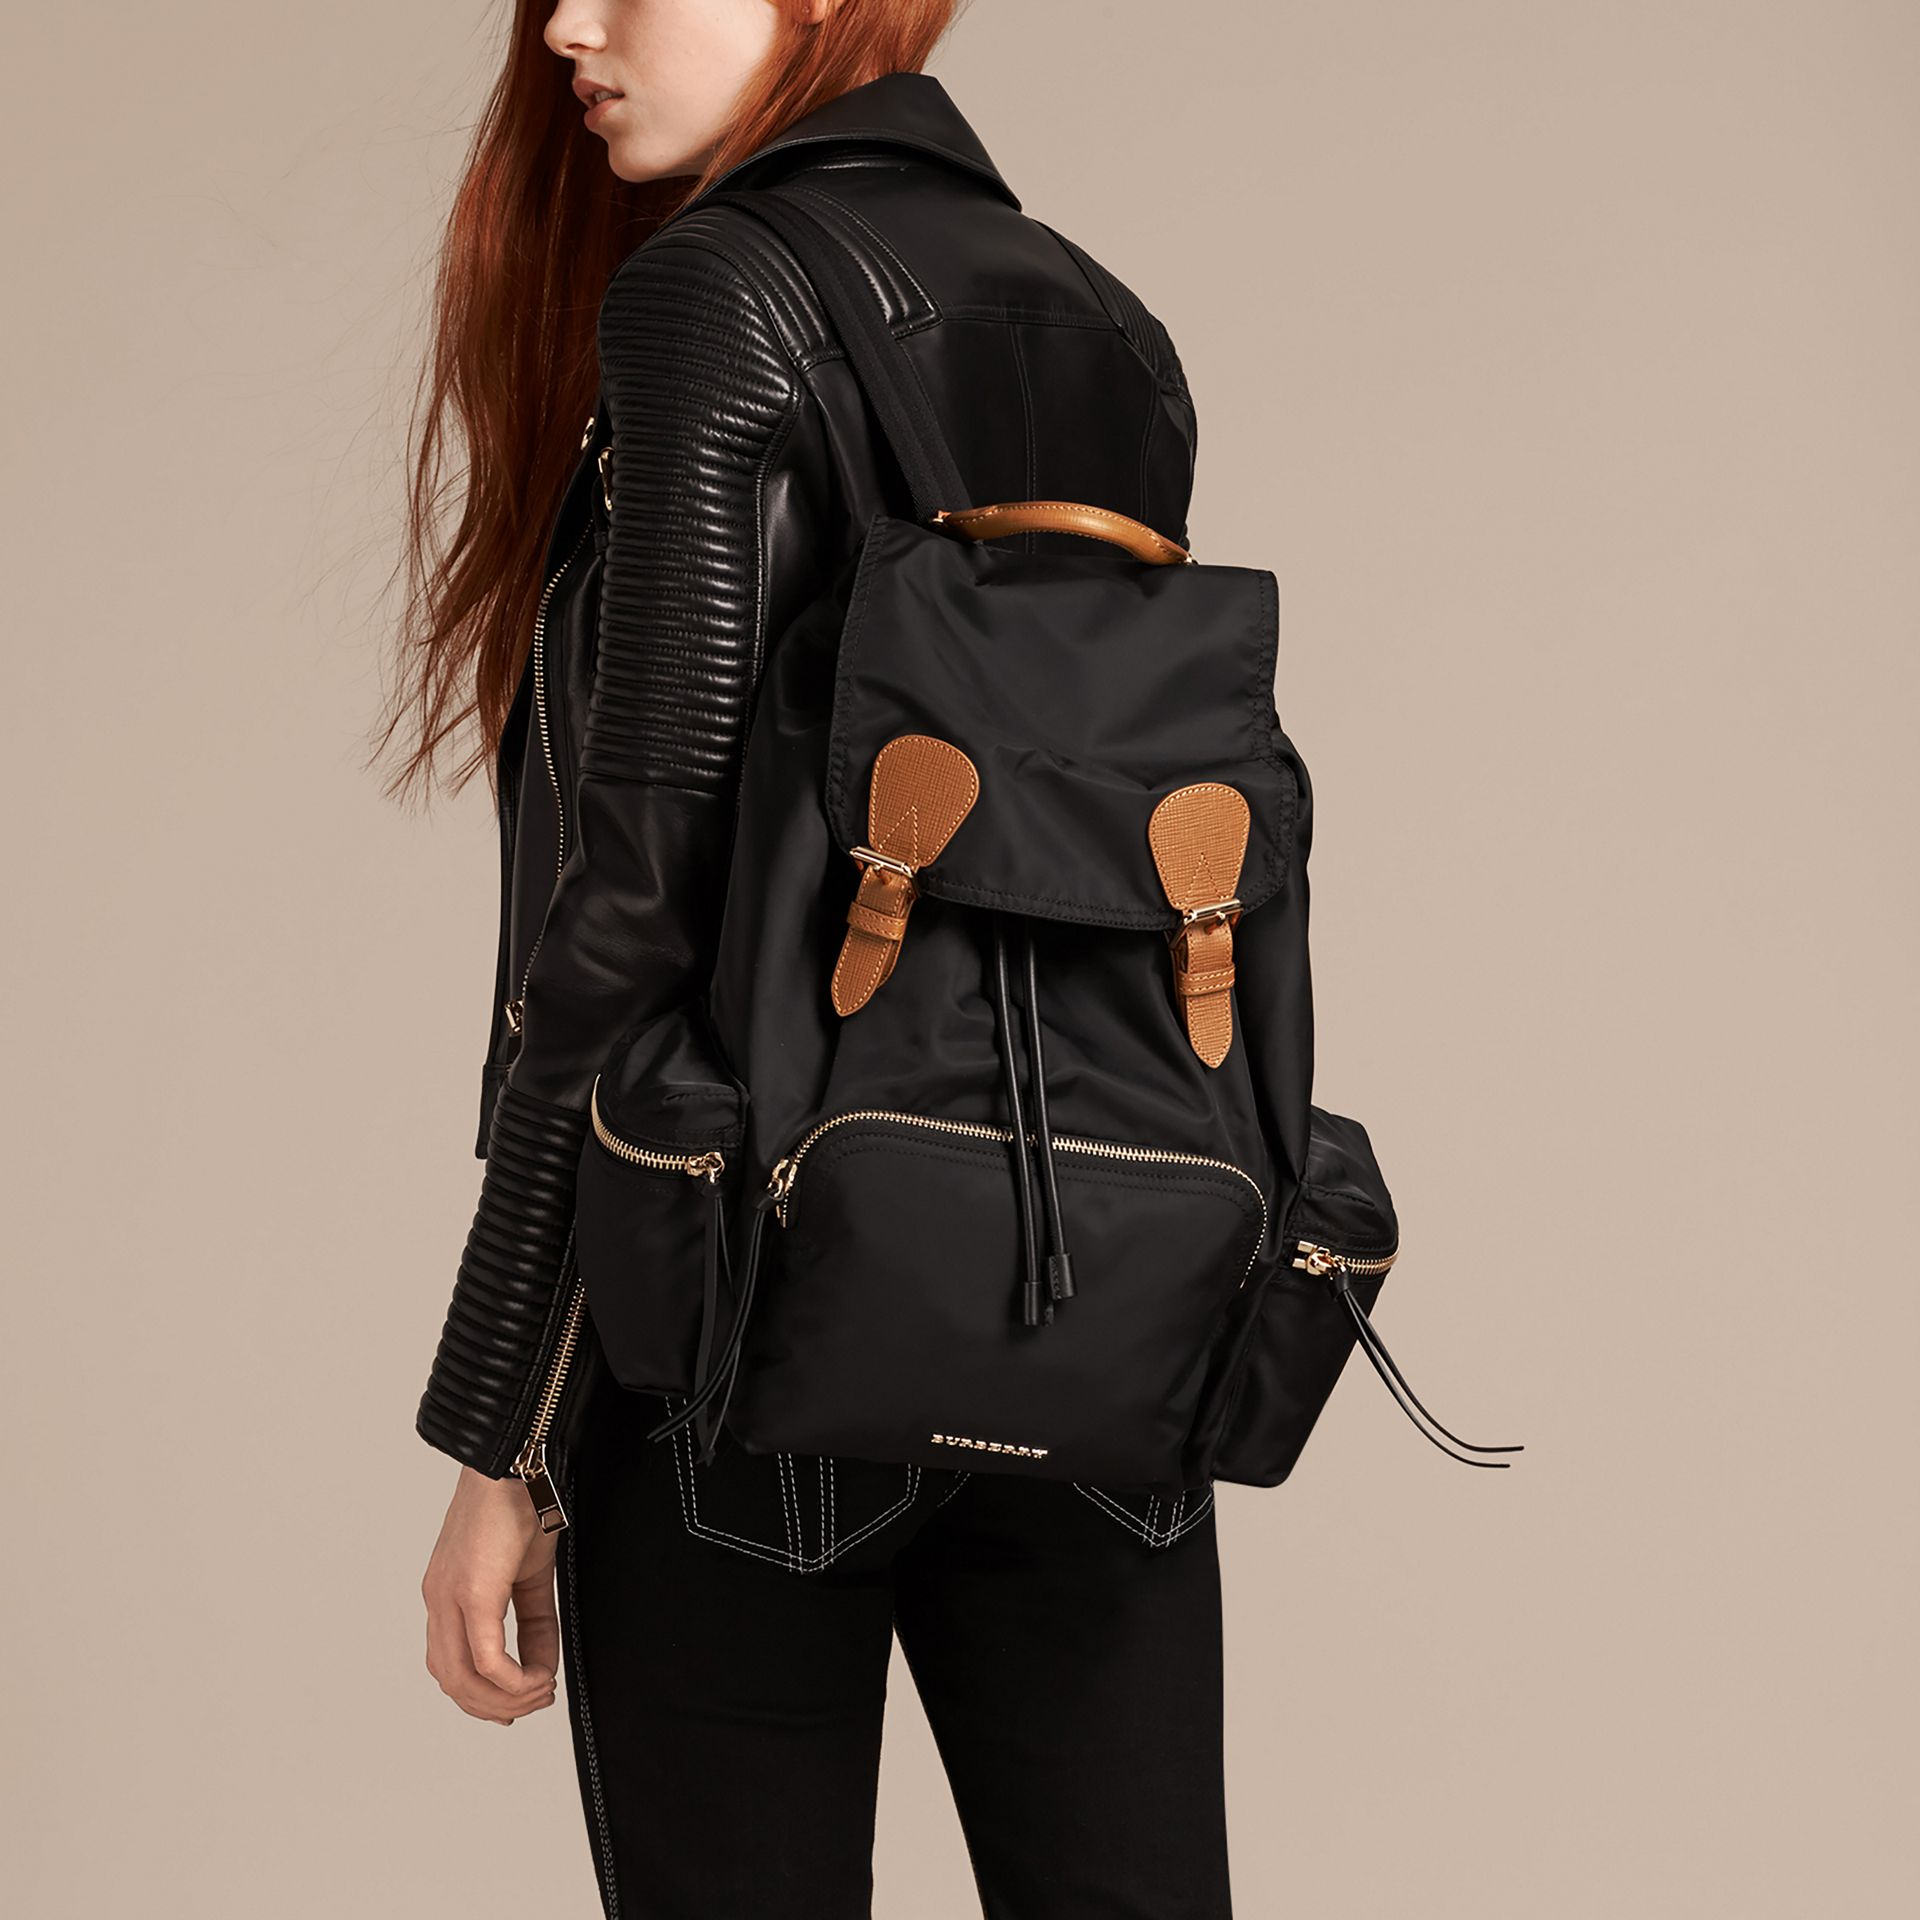 Grand sac The Rucksack en nylon technique et cuir Noir - photo de la galerie 3